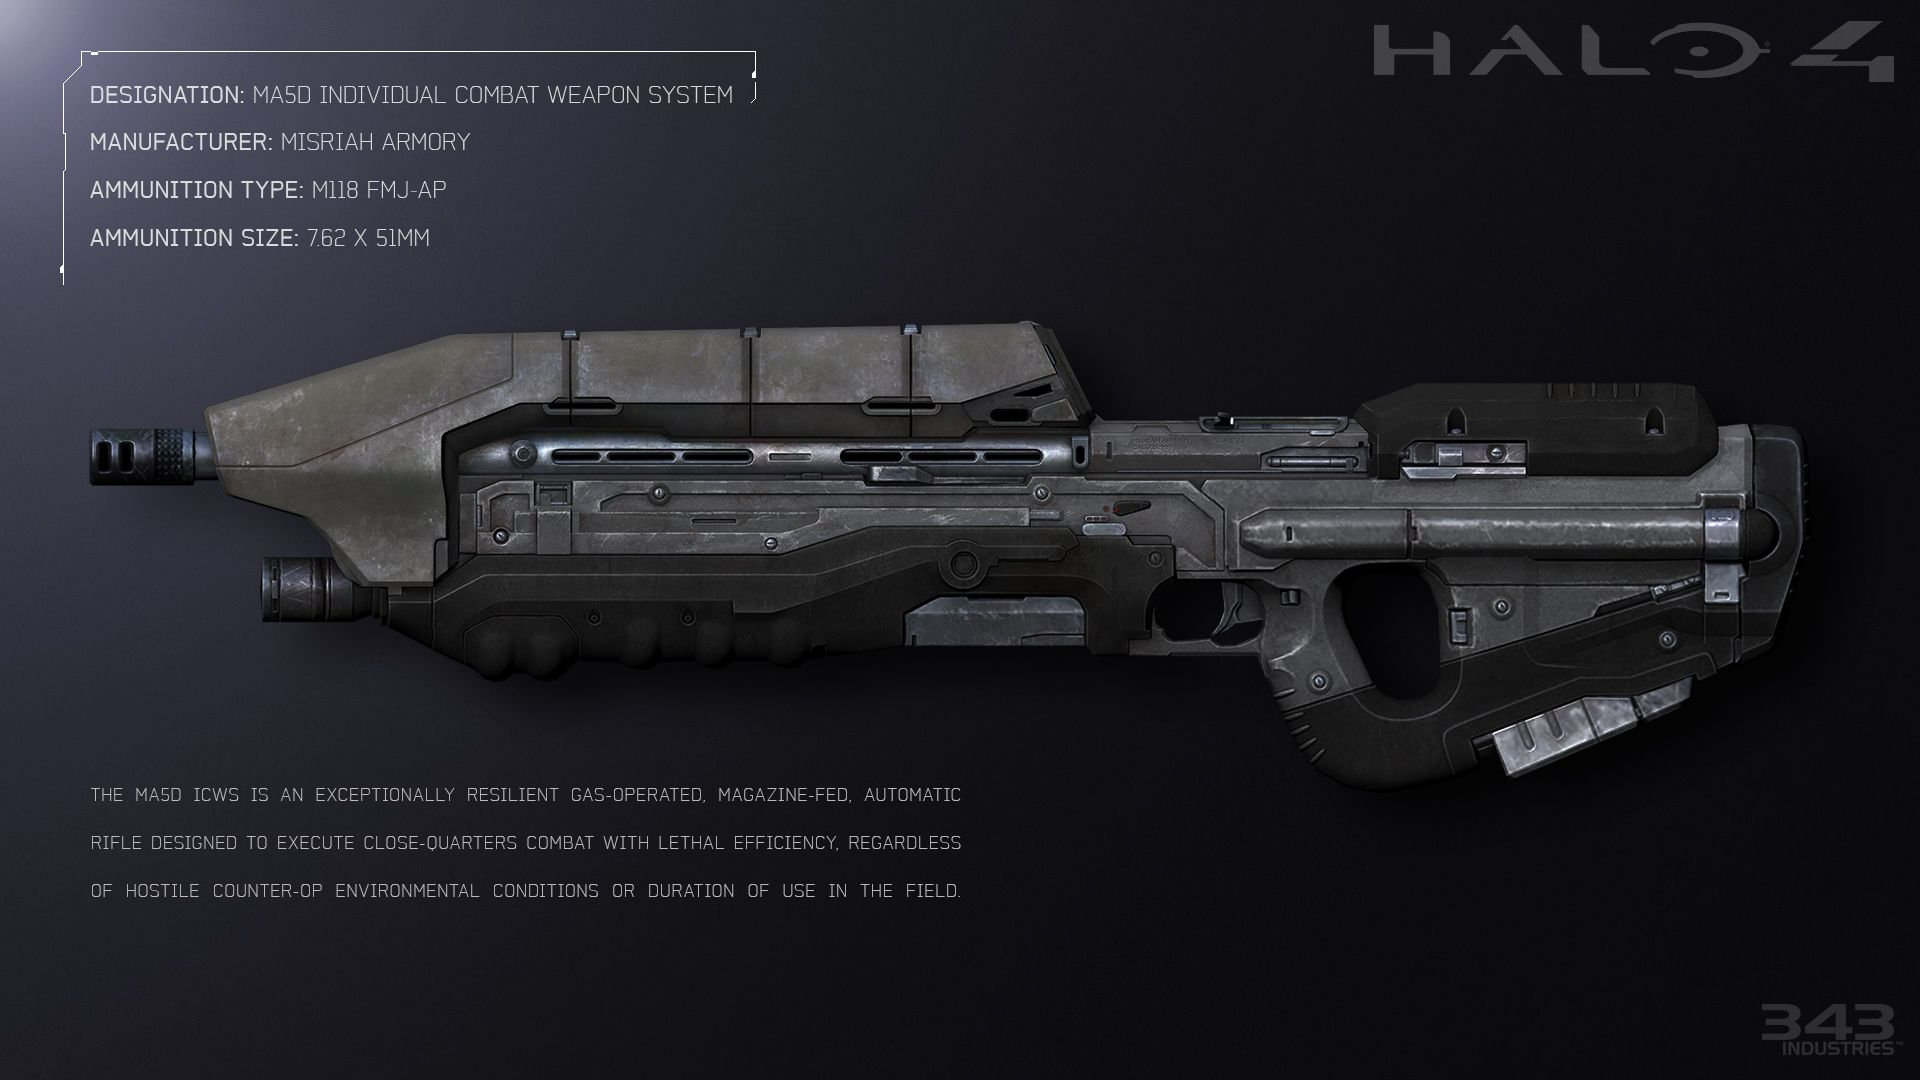 Image Result For Halo 4 Assault Rifle RifleWallpaper BackgroundsHaloVideo